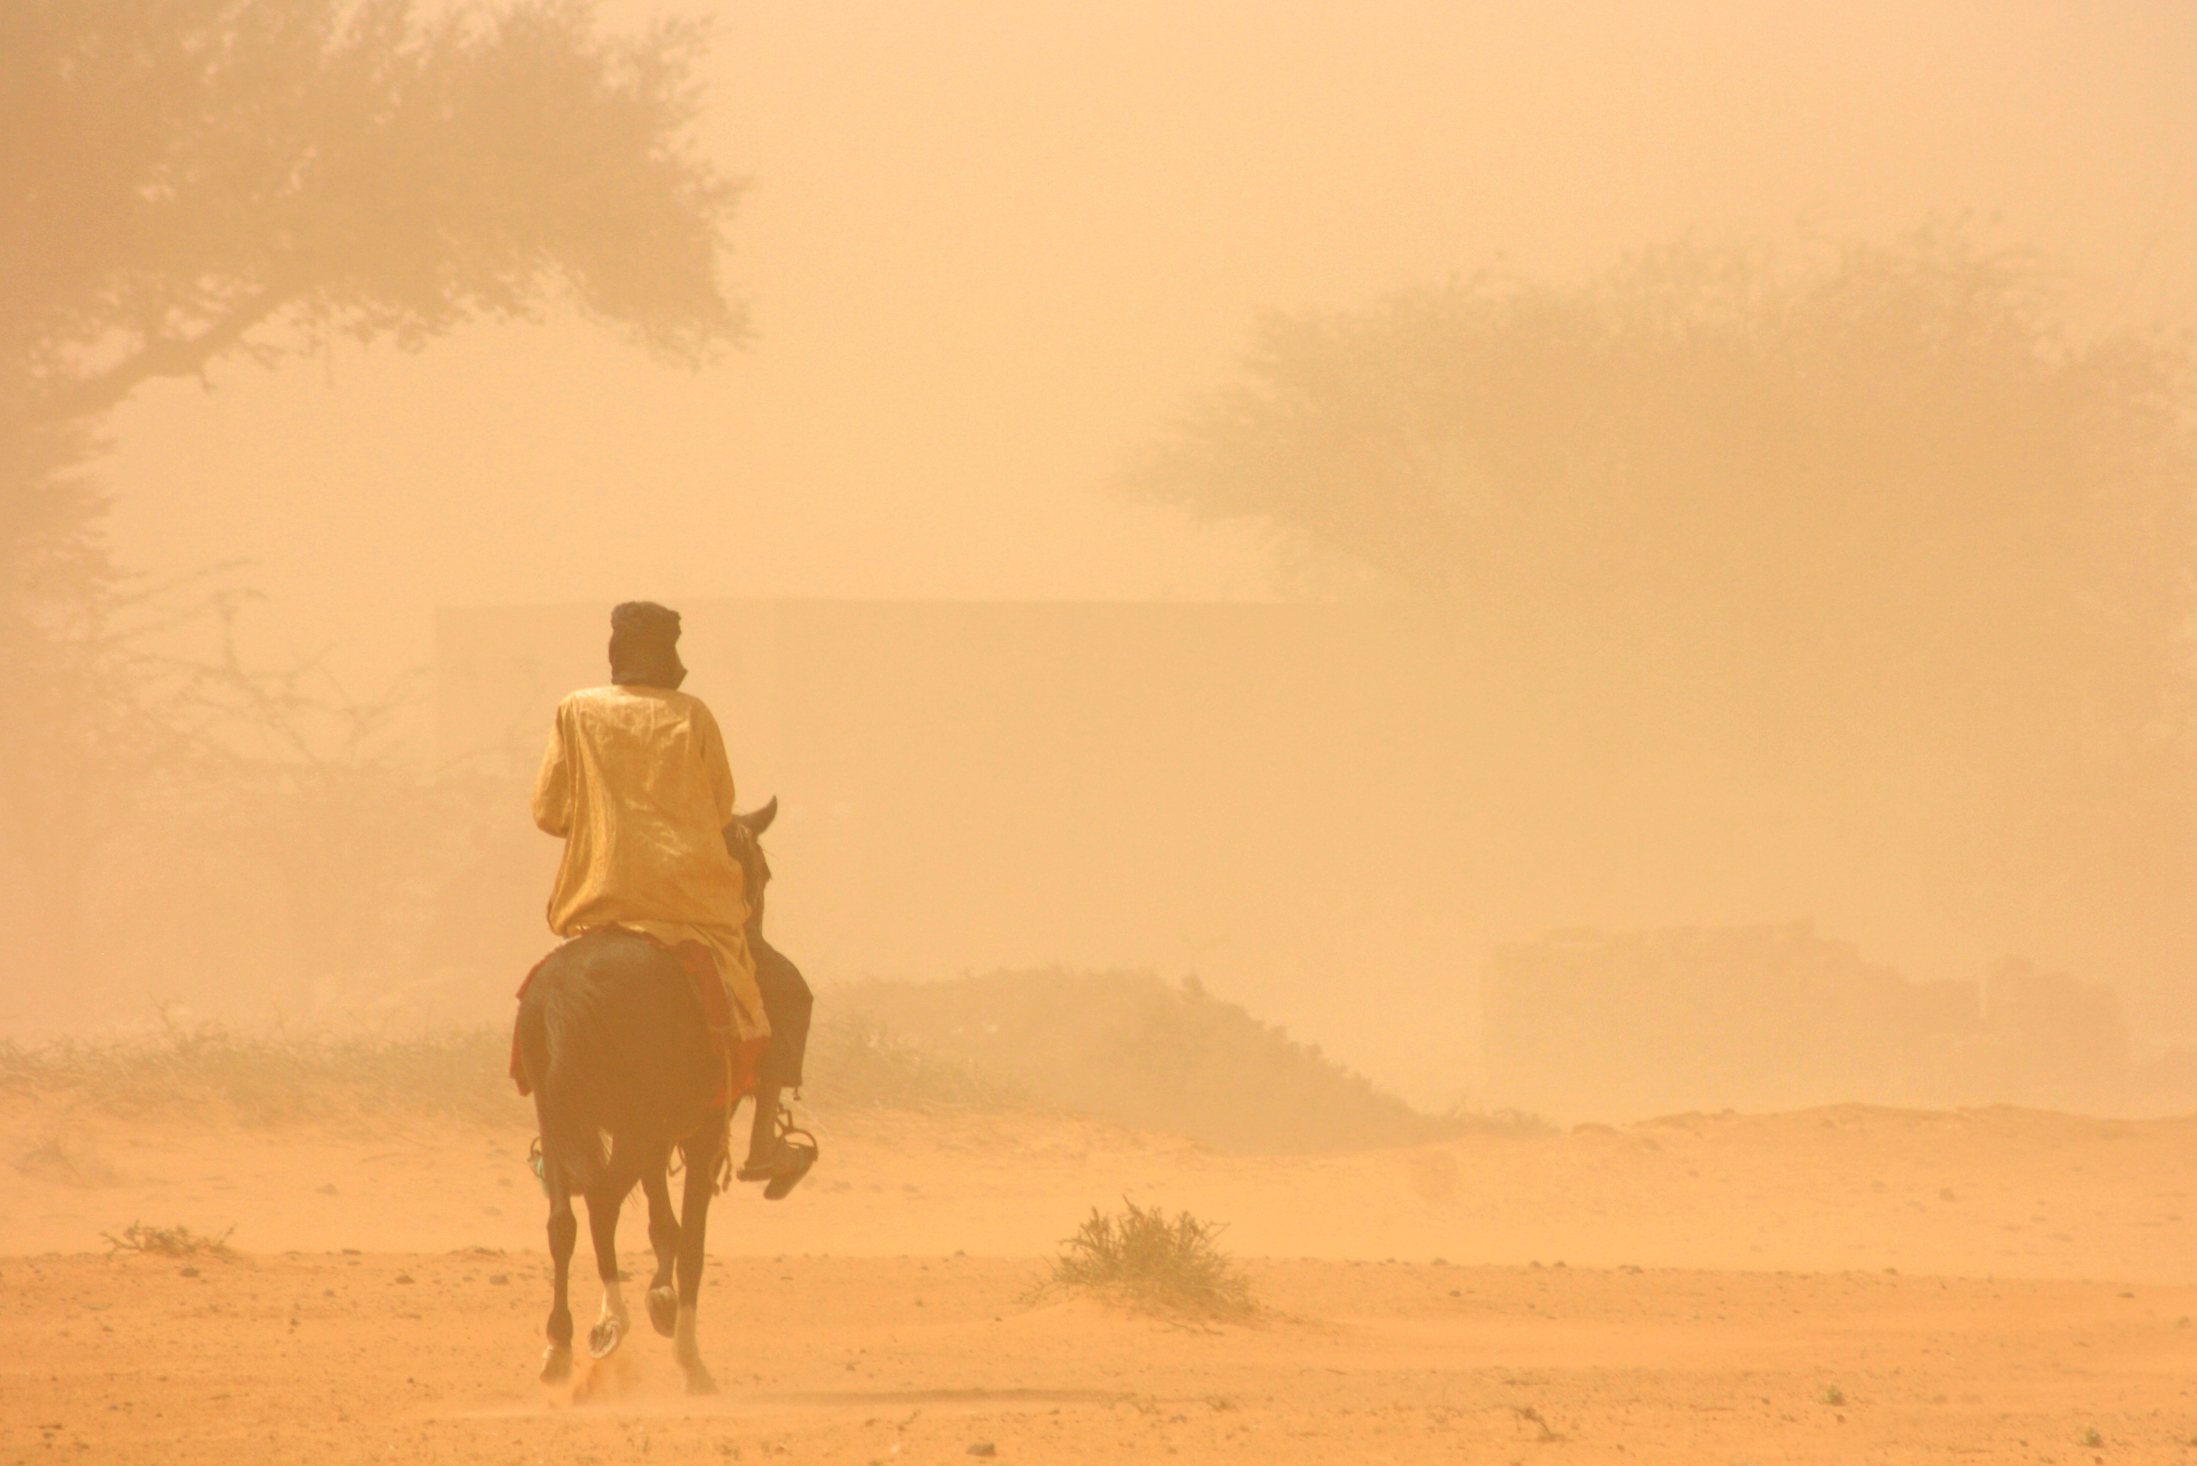 A man on horseback rides through a sandstorm in Niger's Tillaberi region in the southwest